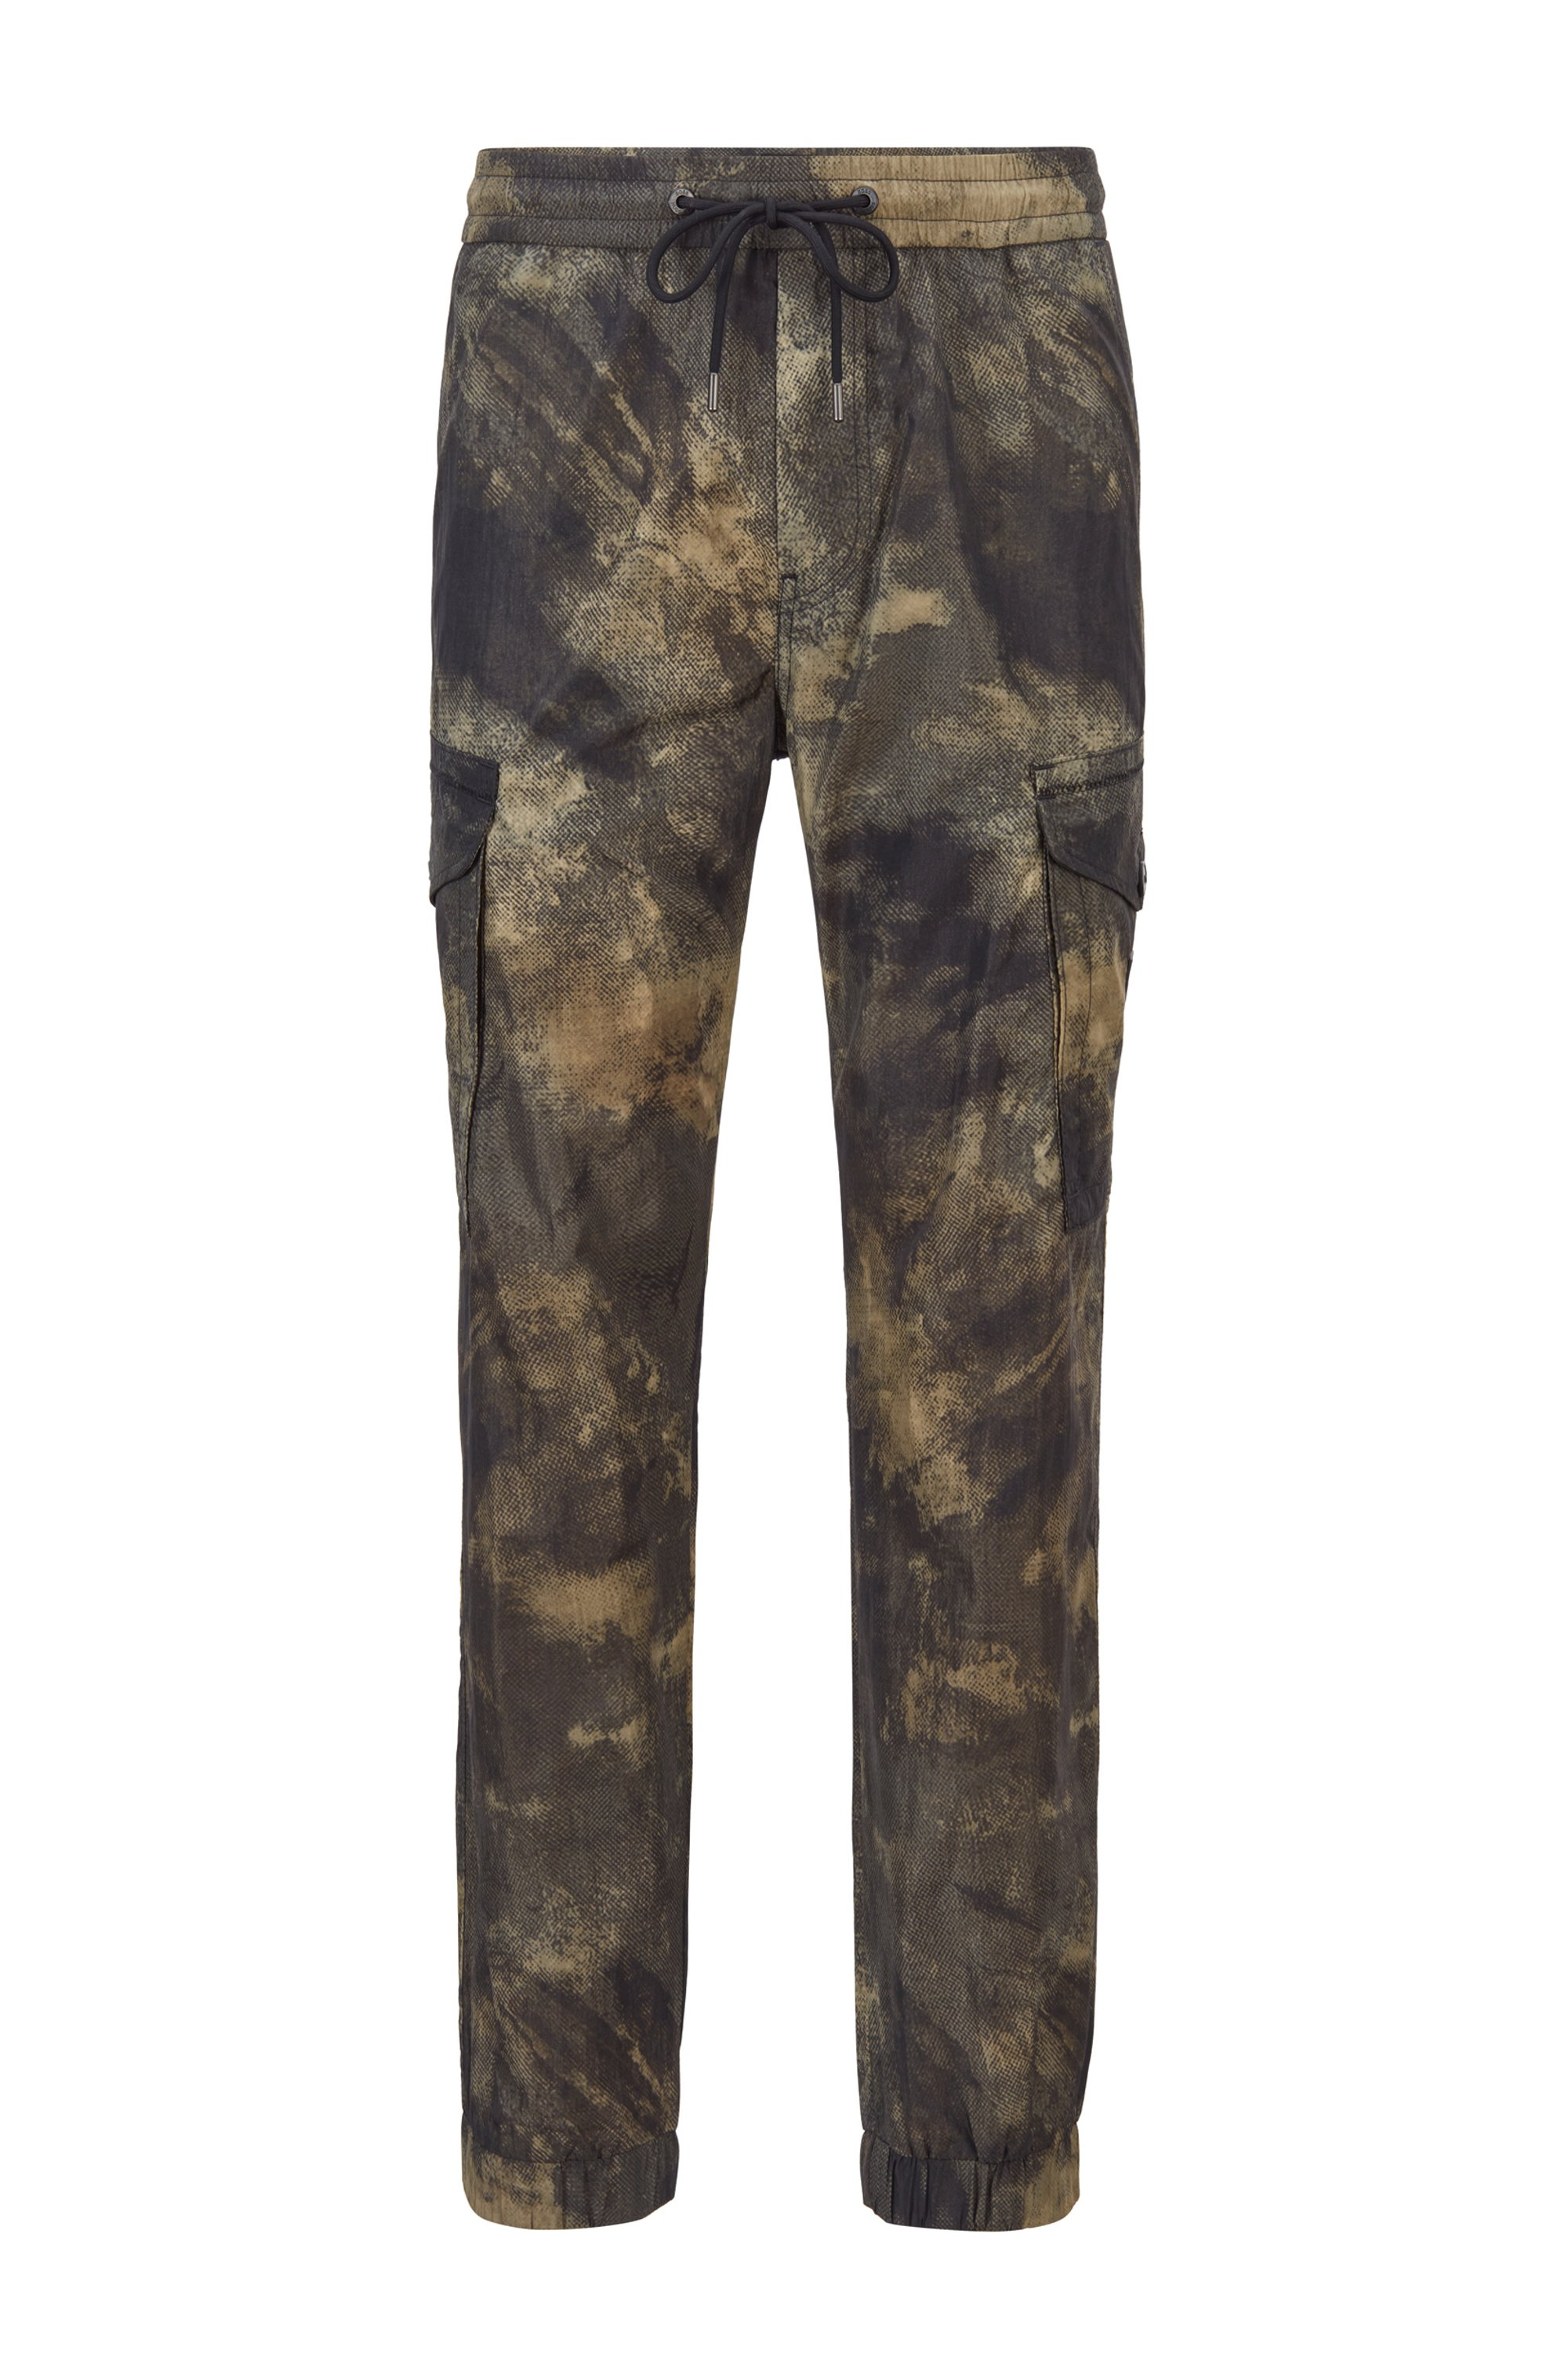 Relaxed-Fit Cargohose mit Camouflage-Print, Beige gemustert